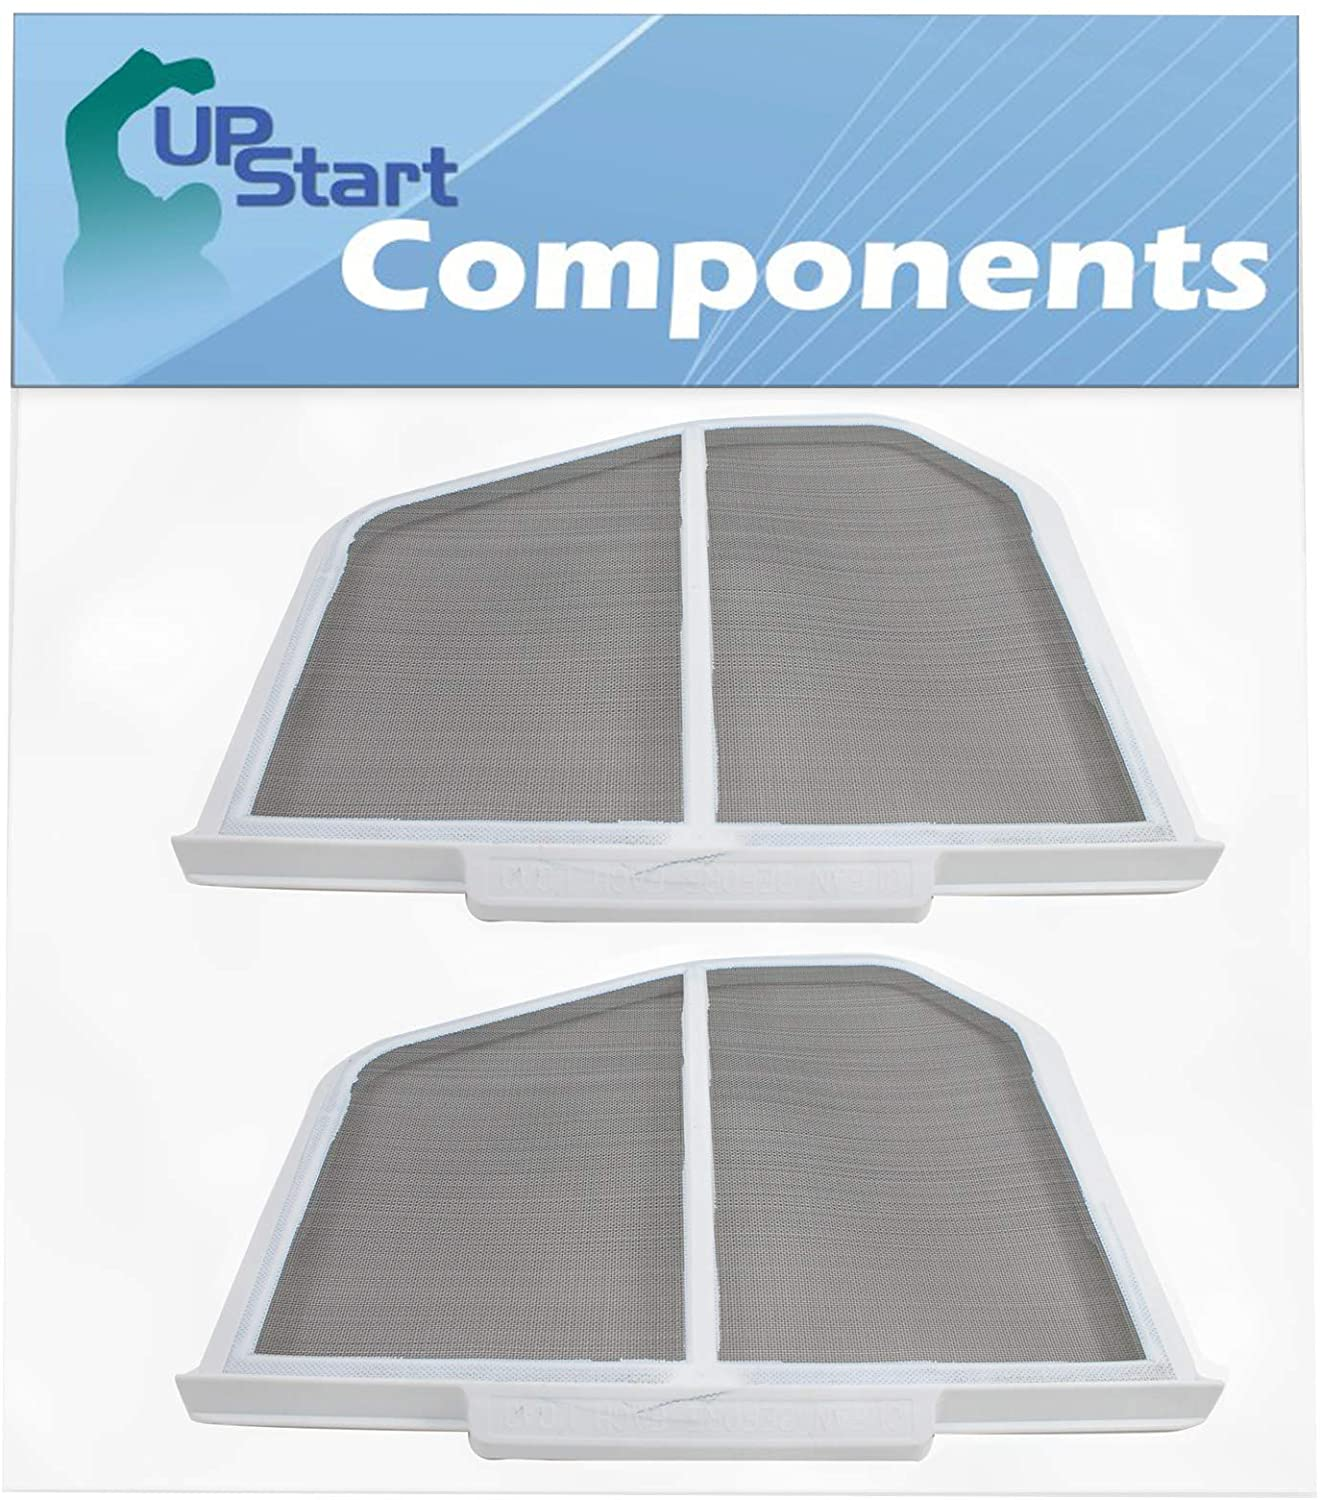 2-Pack W10120998 Dryer Lint Screen Replacement for Whirlpool WGD9600TA2 - Compatible with 8066170 Lint Screen Filter Catcher